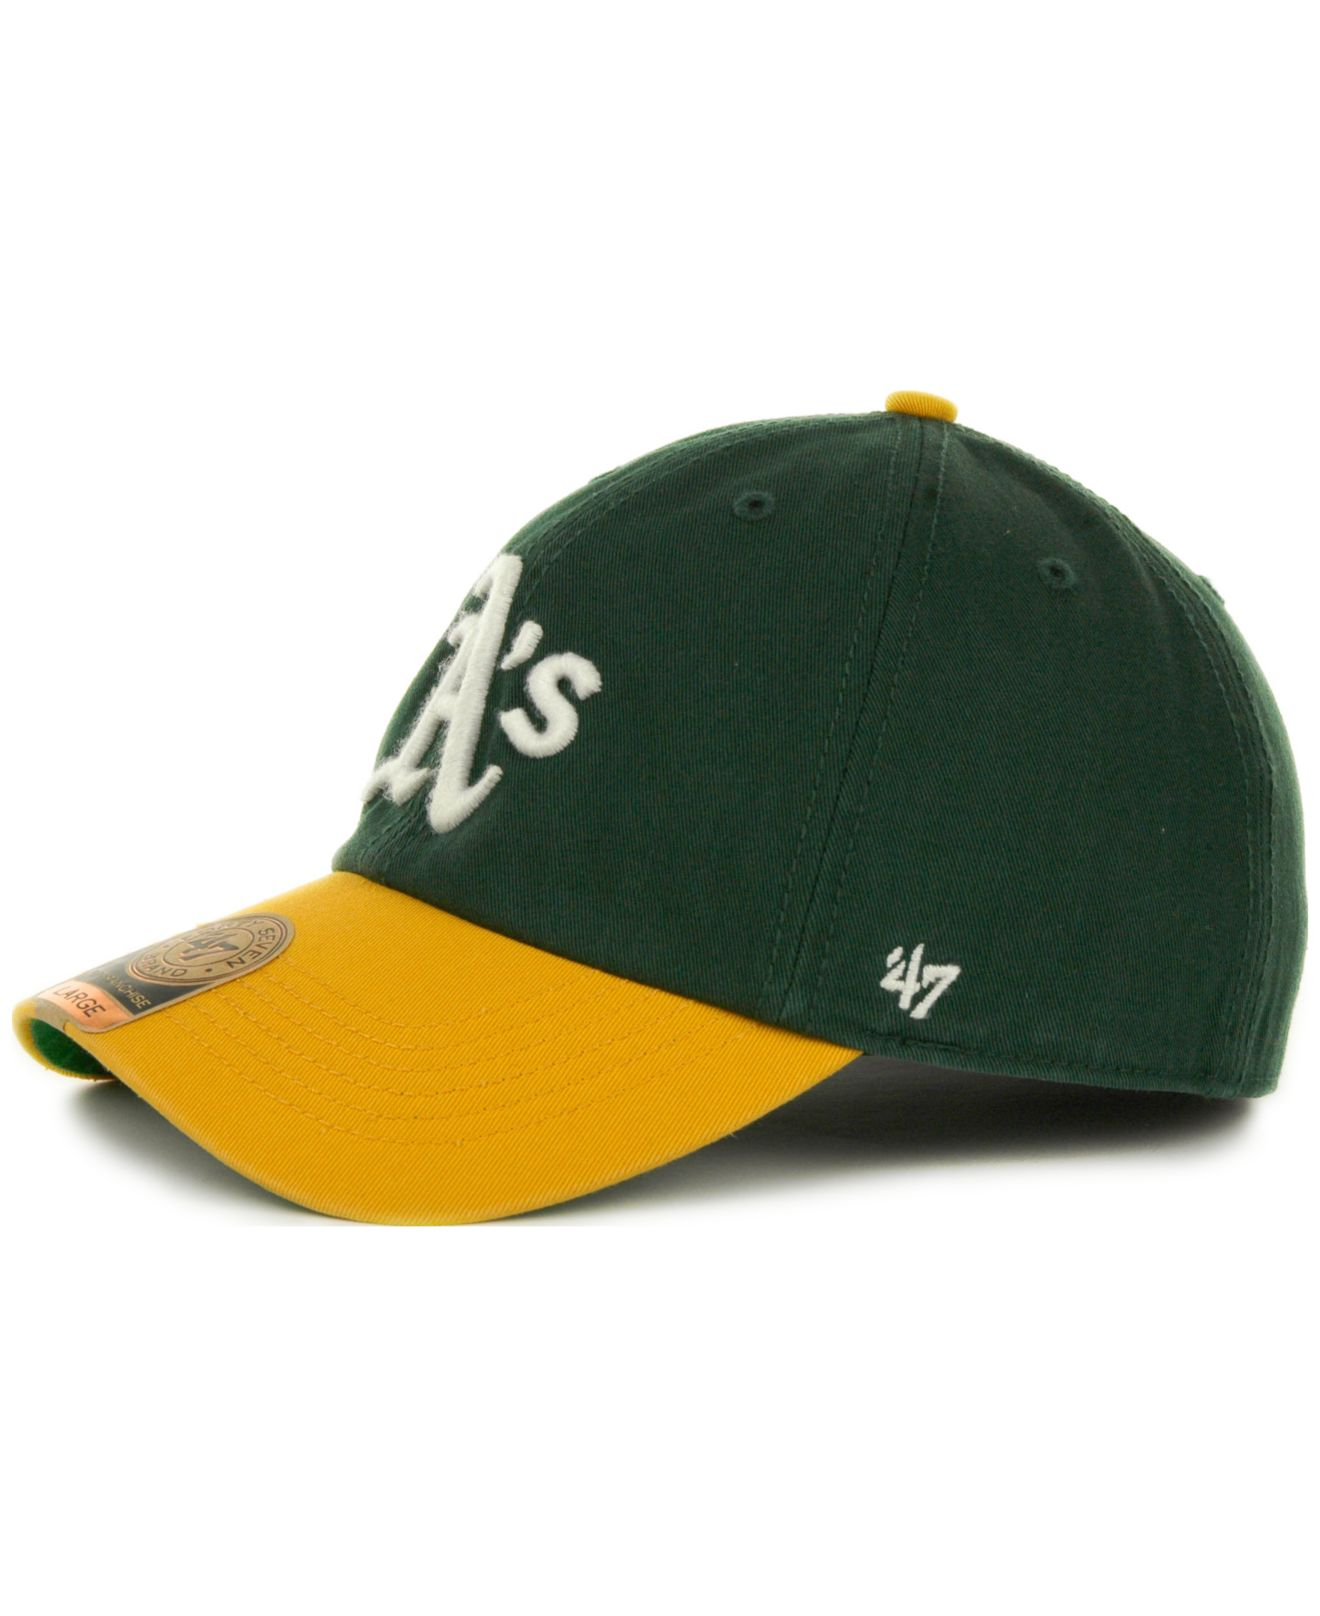 new photos 80314 464ed ... discount code for lyst 47 brand oakland athletics 47 franchise cap in  green for men f3af0